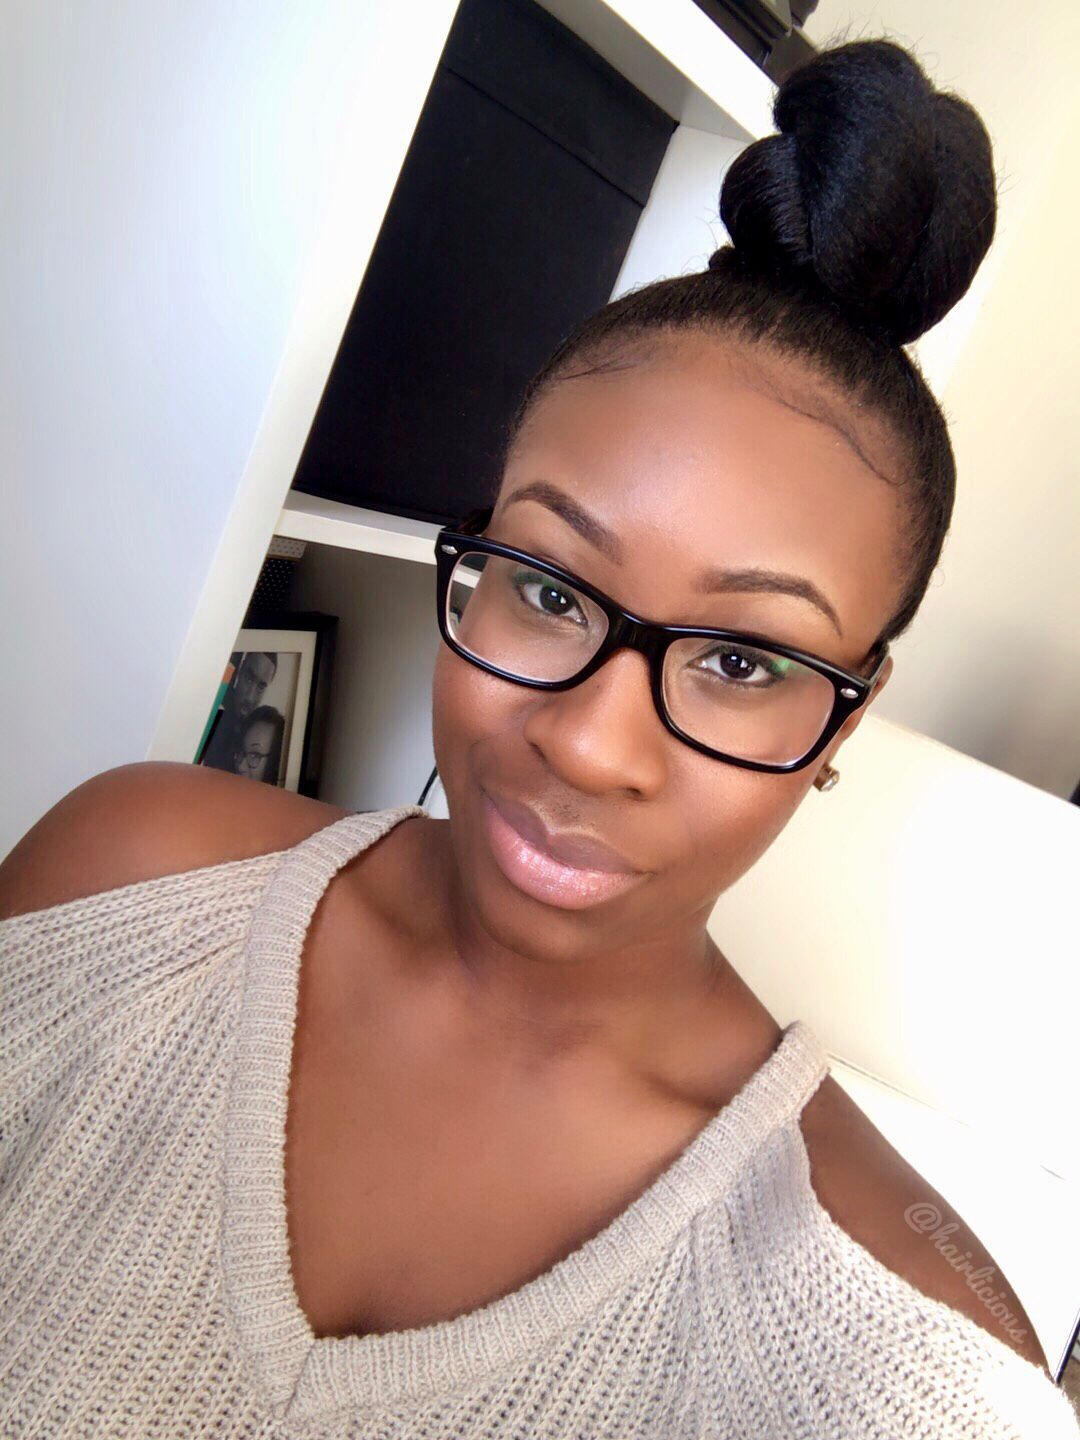 Top Knot Bun On Relaxed Hair Hairliciousinc Com Relaxed Hair Top Knot Bun Relaxed Hair Care